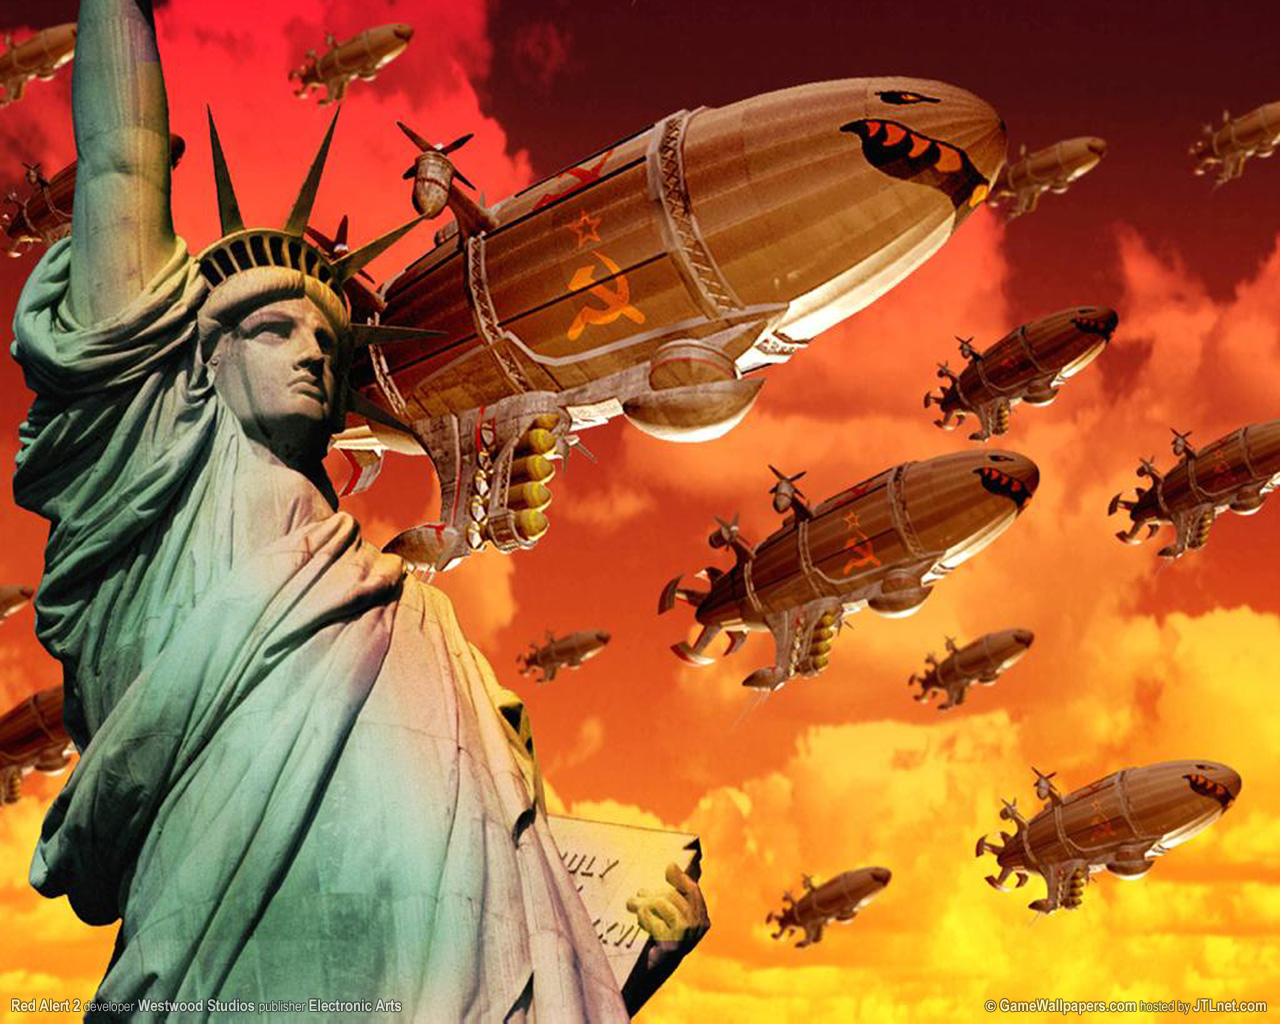 All softwares new: red alert 2 free download pc version 2015 updated.